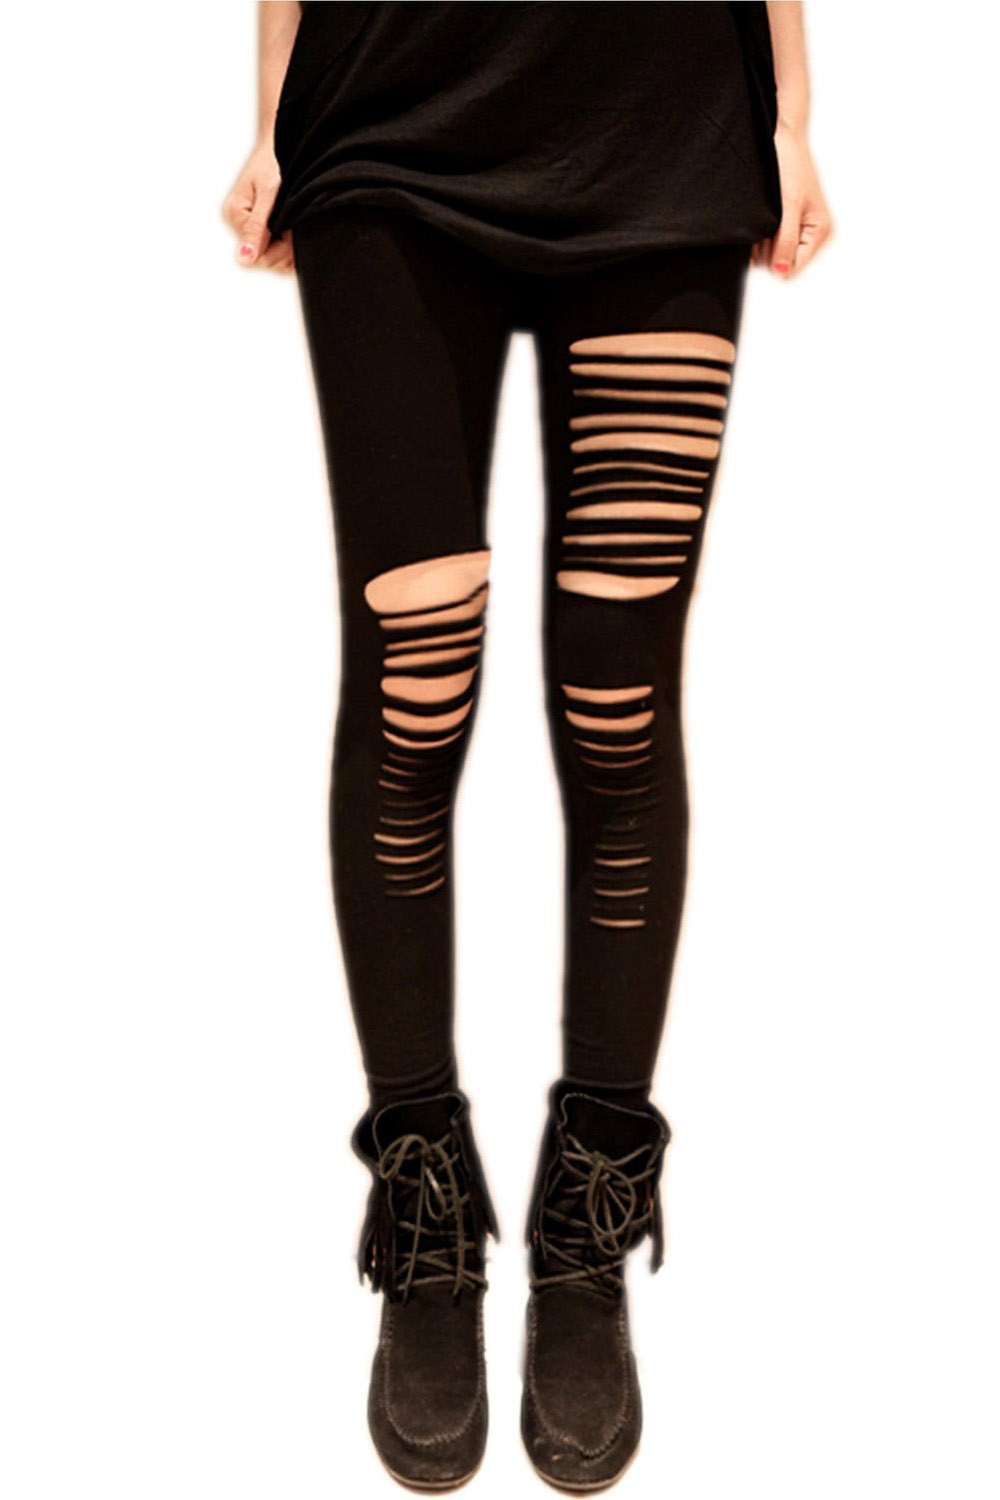 Womens Cut Out Ripped Punk Skinny Pants Hollow Trousers Black Pencil